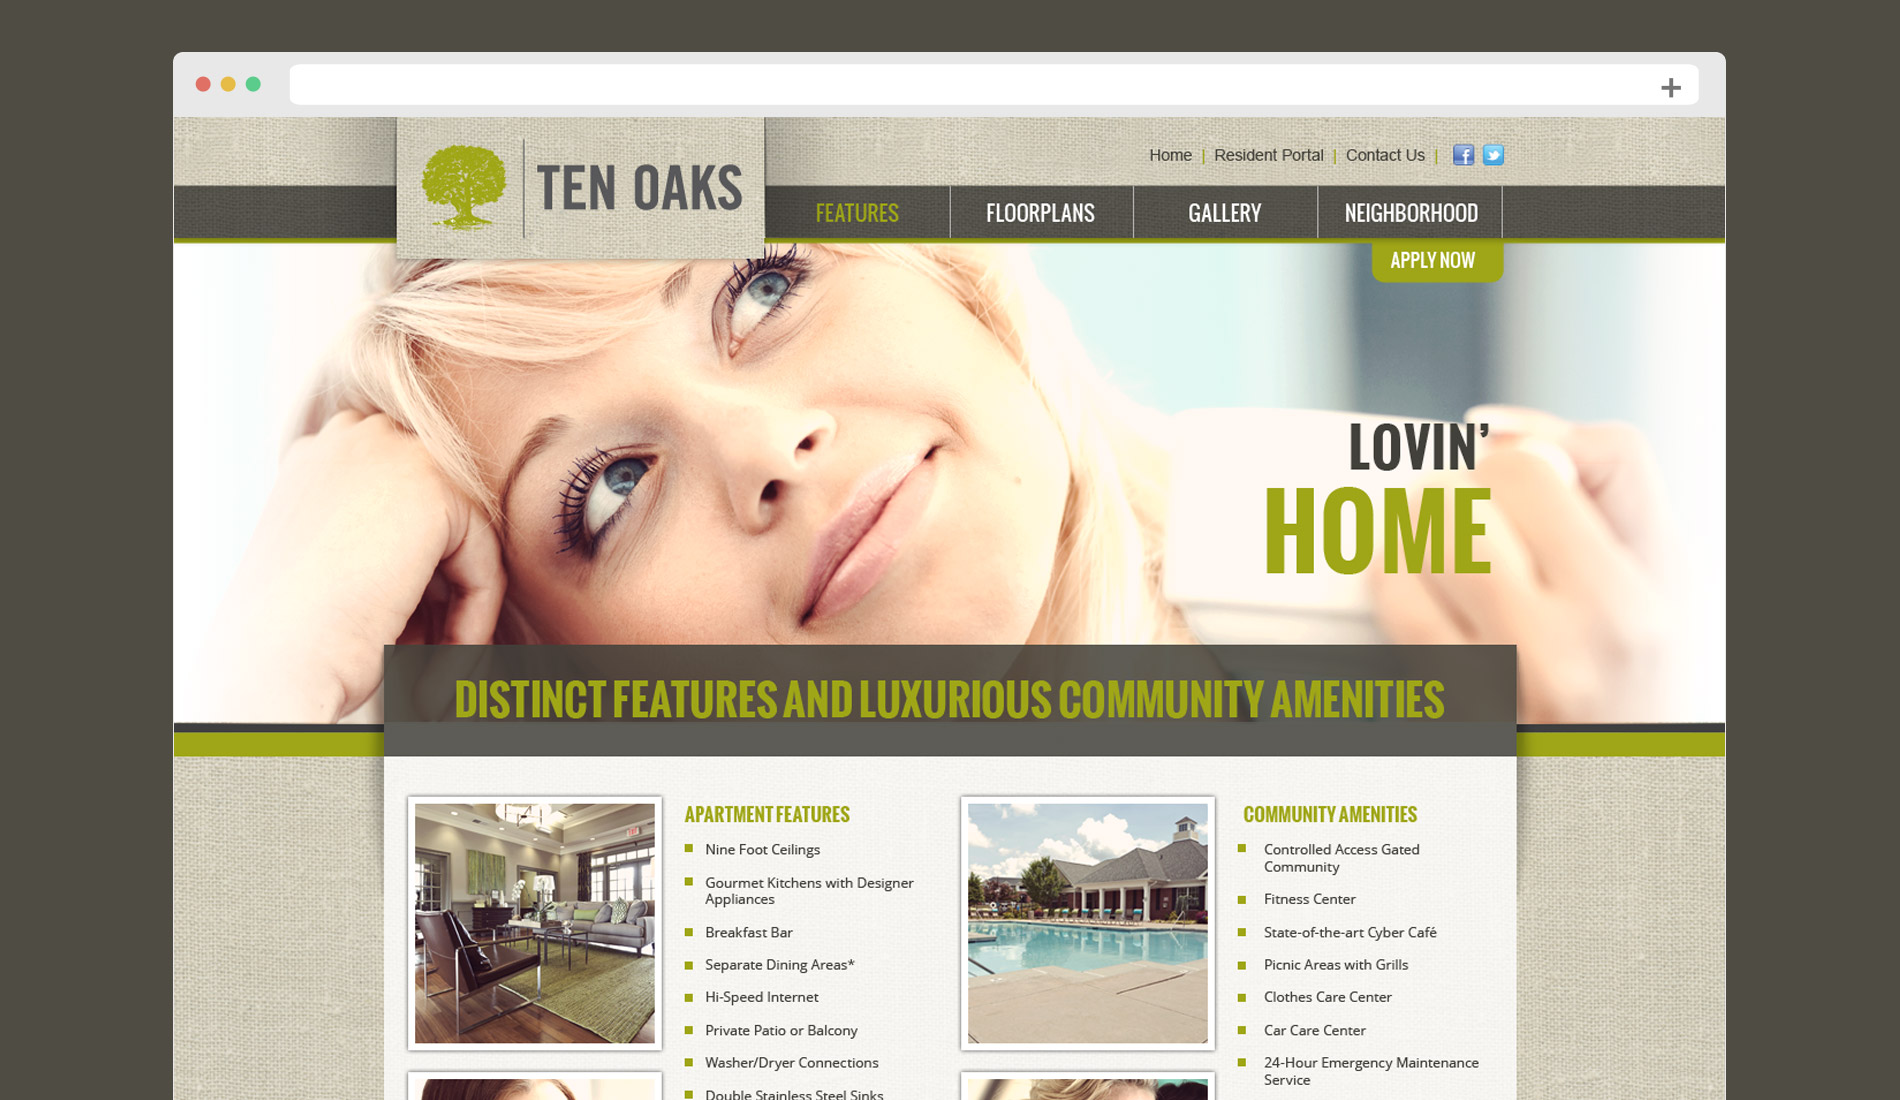 Web design for a luxury apartment community